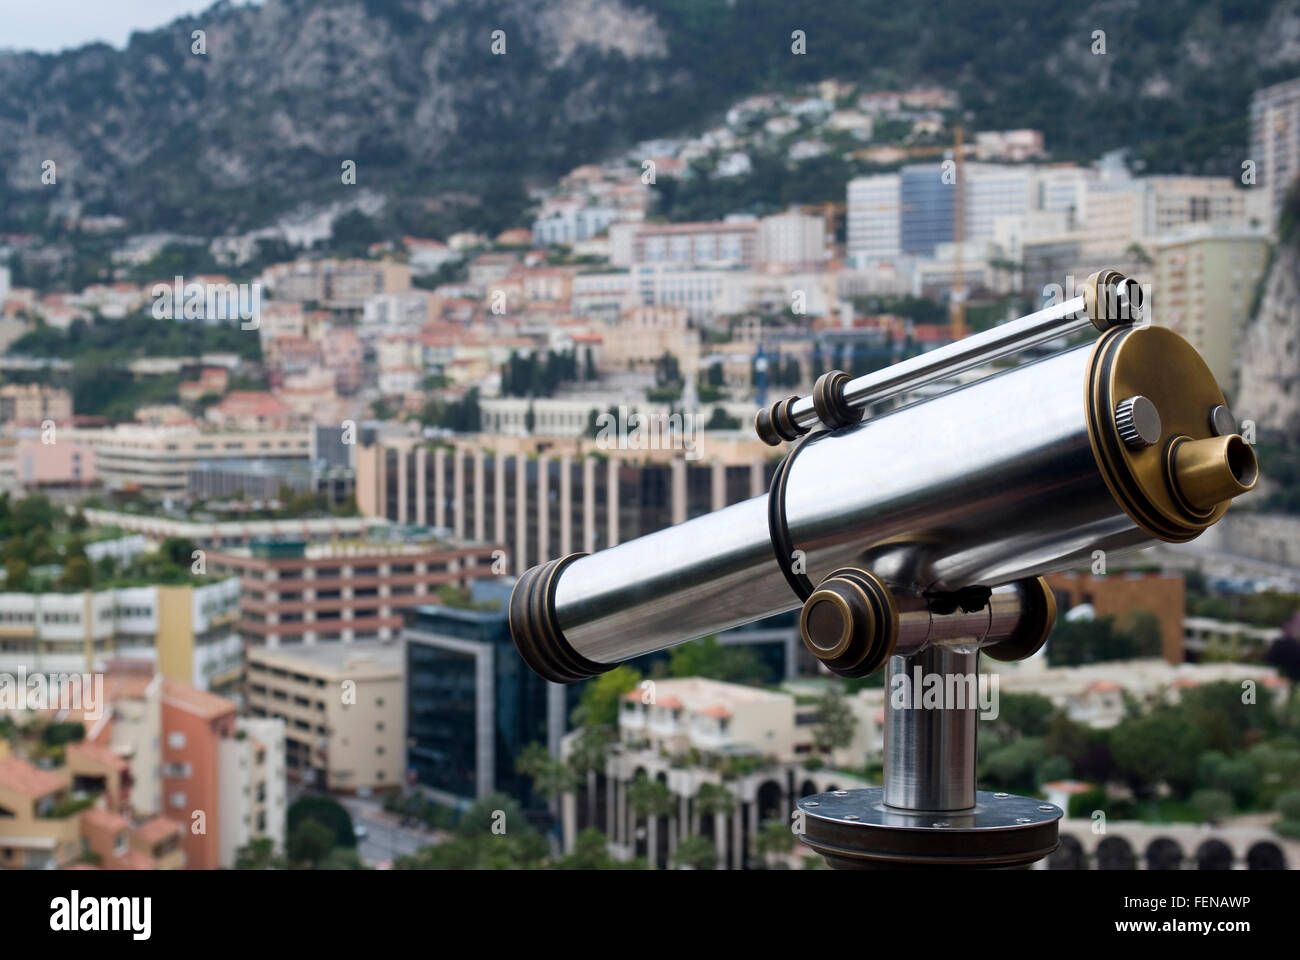 Coin operated telescope overlooking city - Stock Image